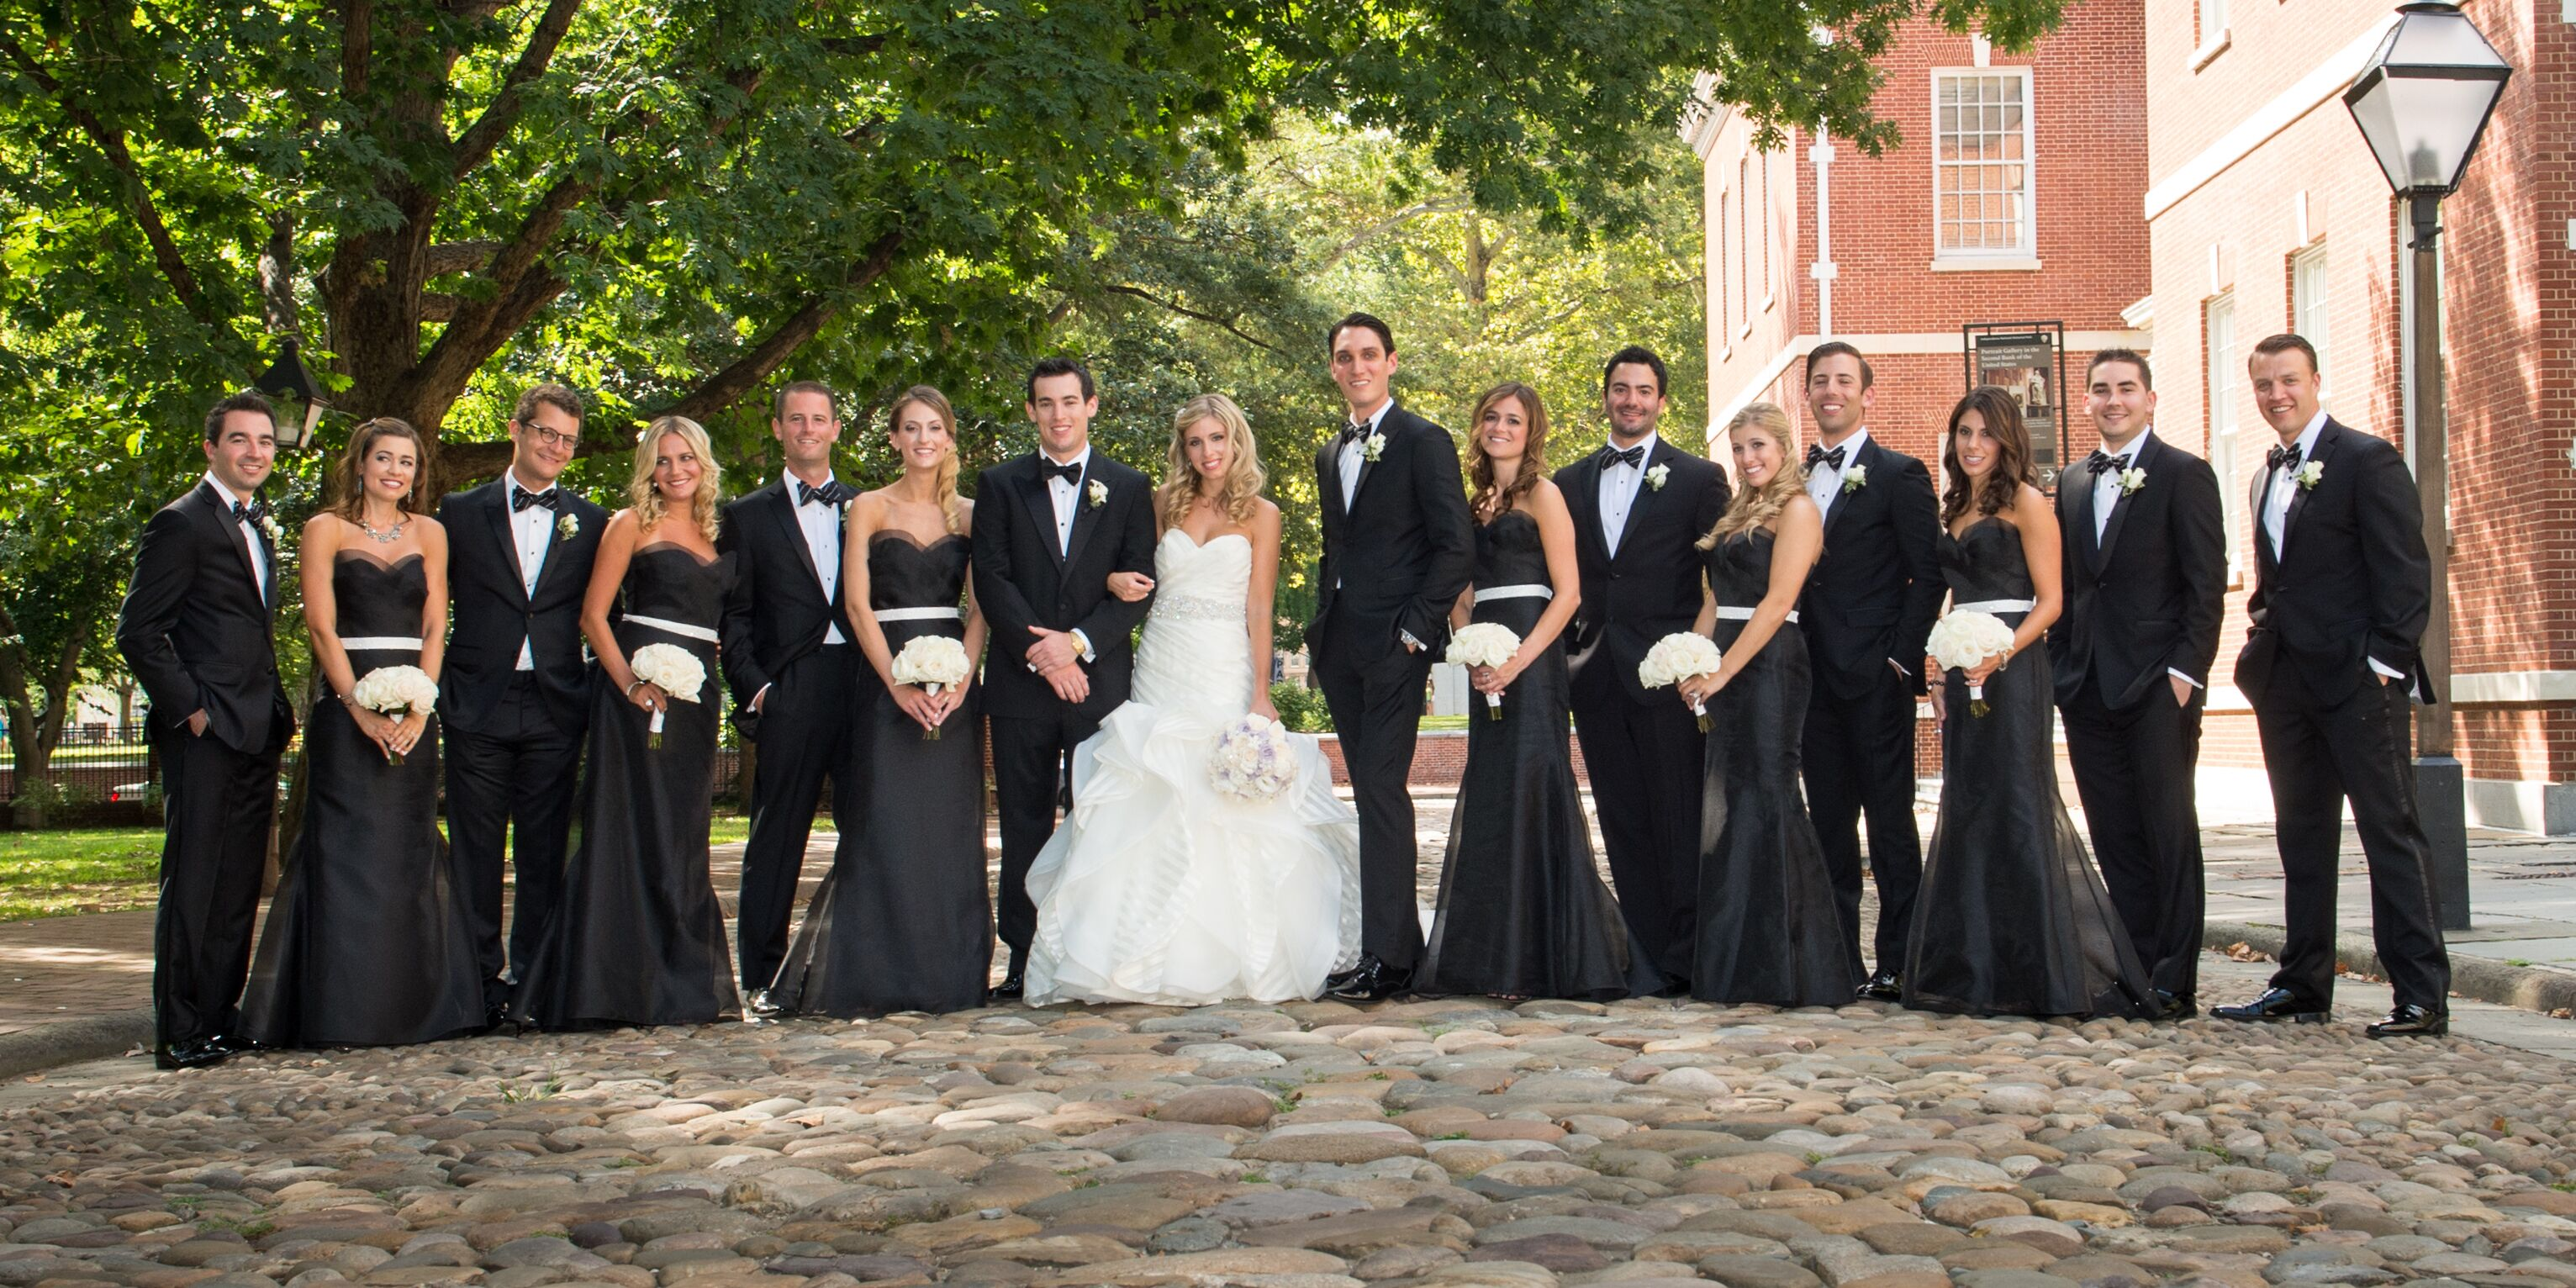 Elegant Black-and-White Wedding Party